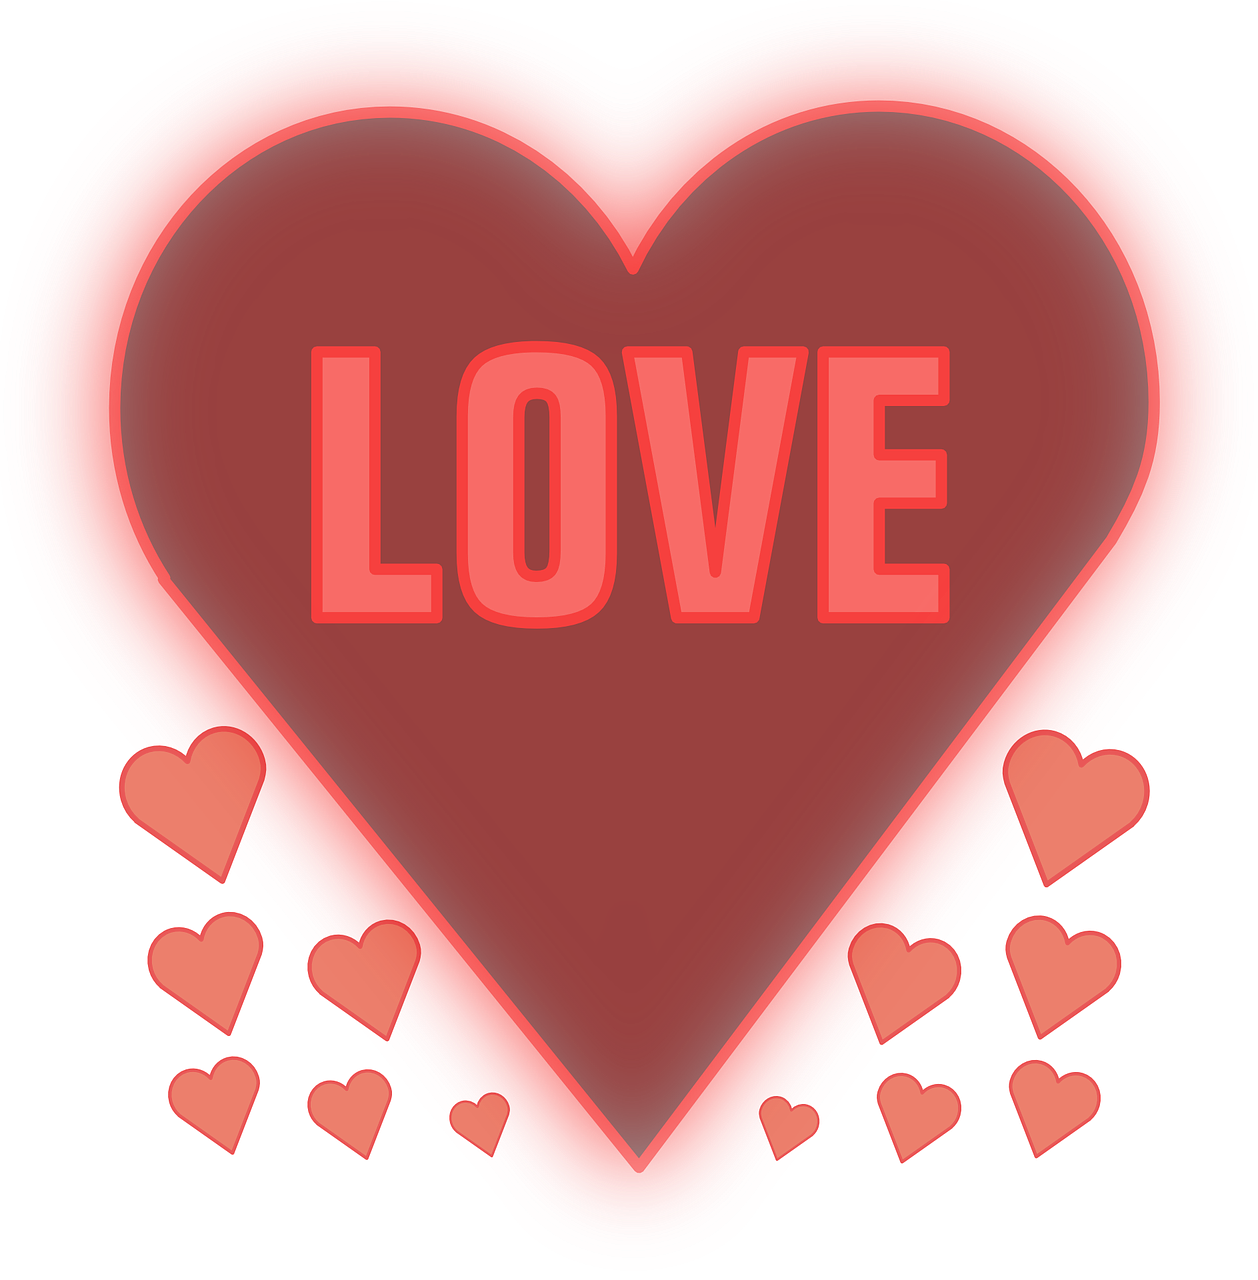 love heart affection free photo